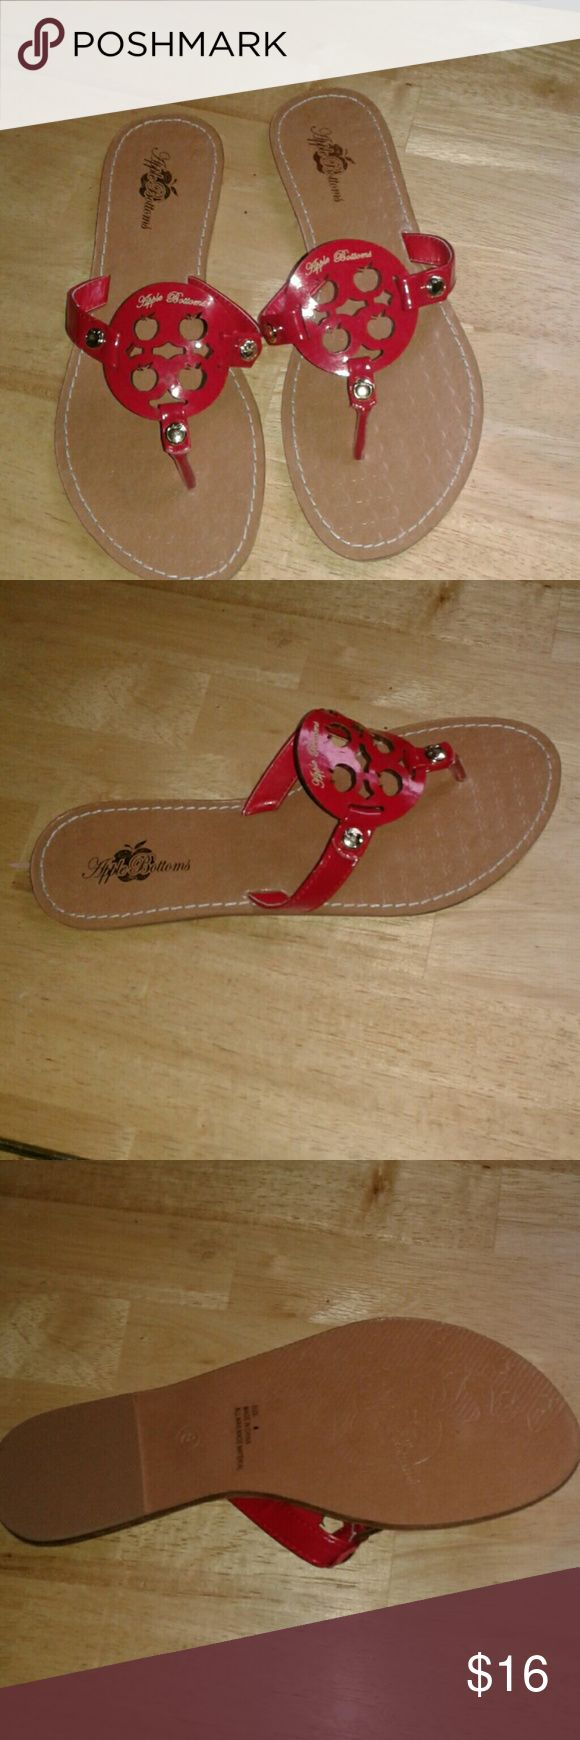 LADIES SLIP ONS RED LADY SLIP ONS,  NEVER WORN CUTE JUST THROW THEM ON AND OUT THE DOOR!! Apple Bottoms Shoes Flats & Loafers